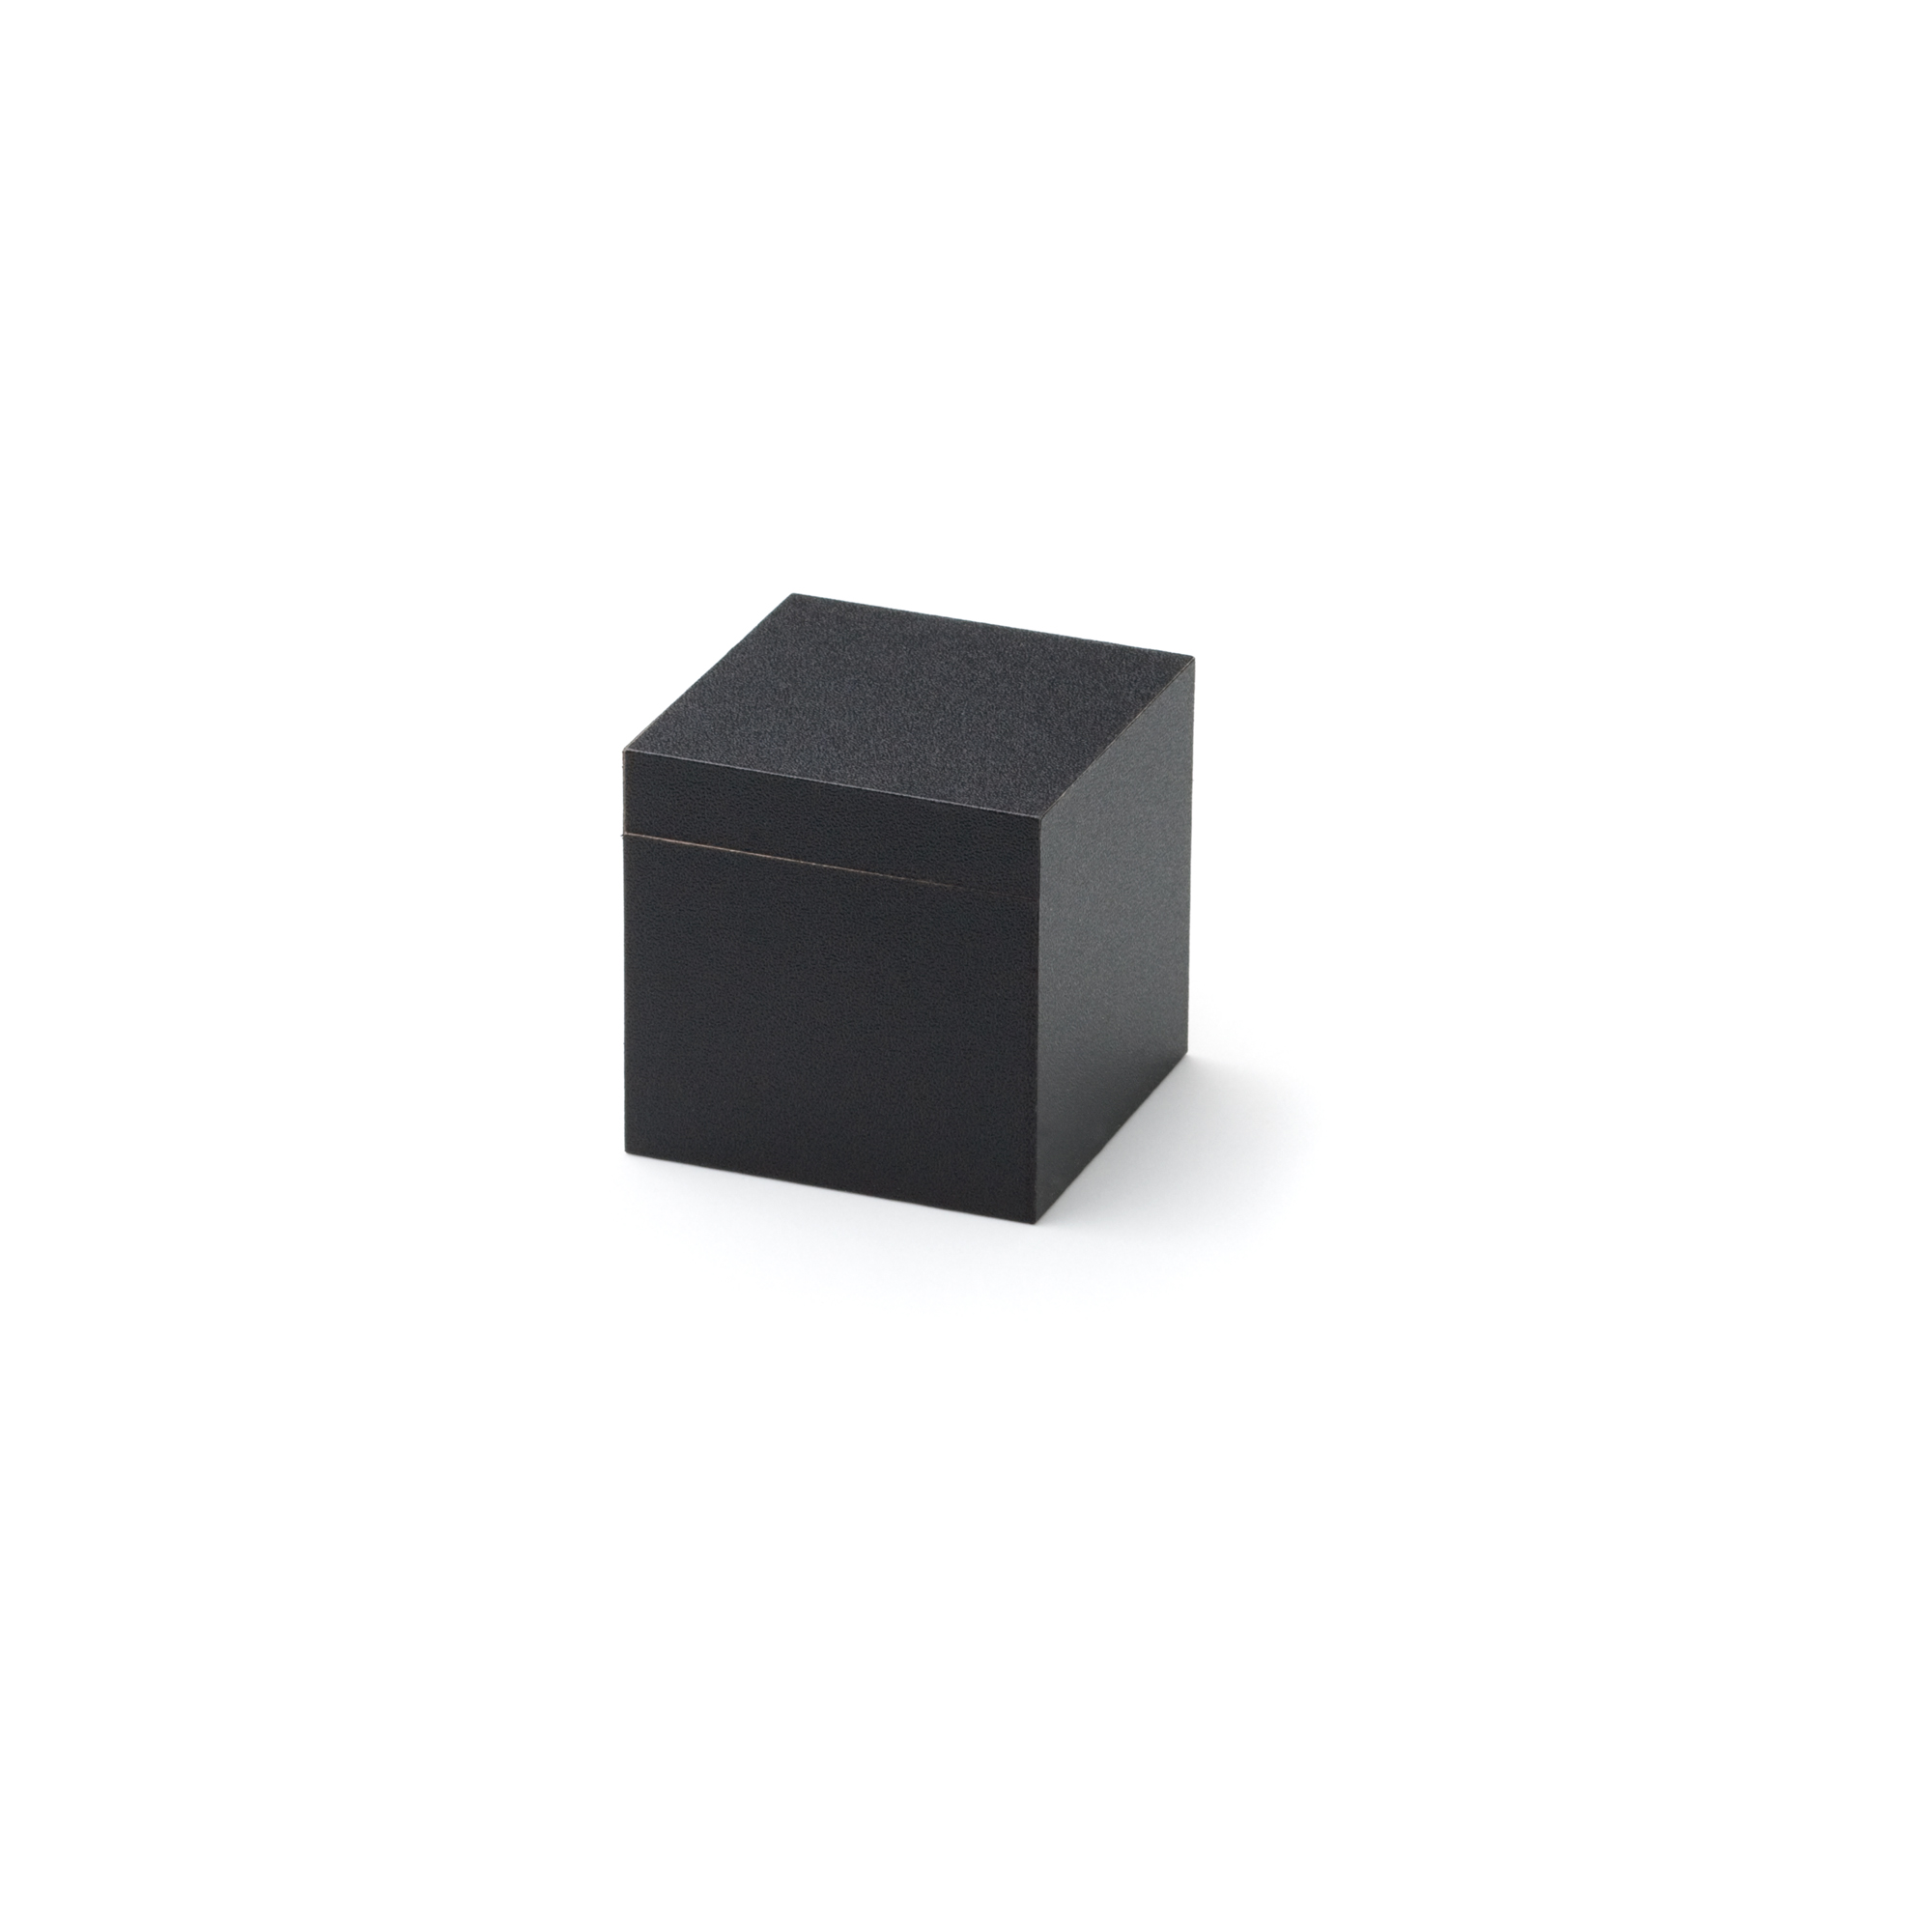 BLACKBOX Ring